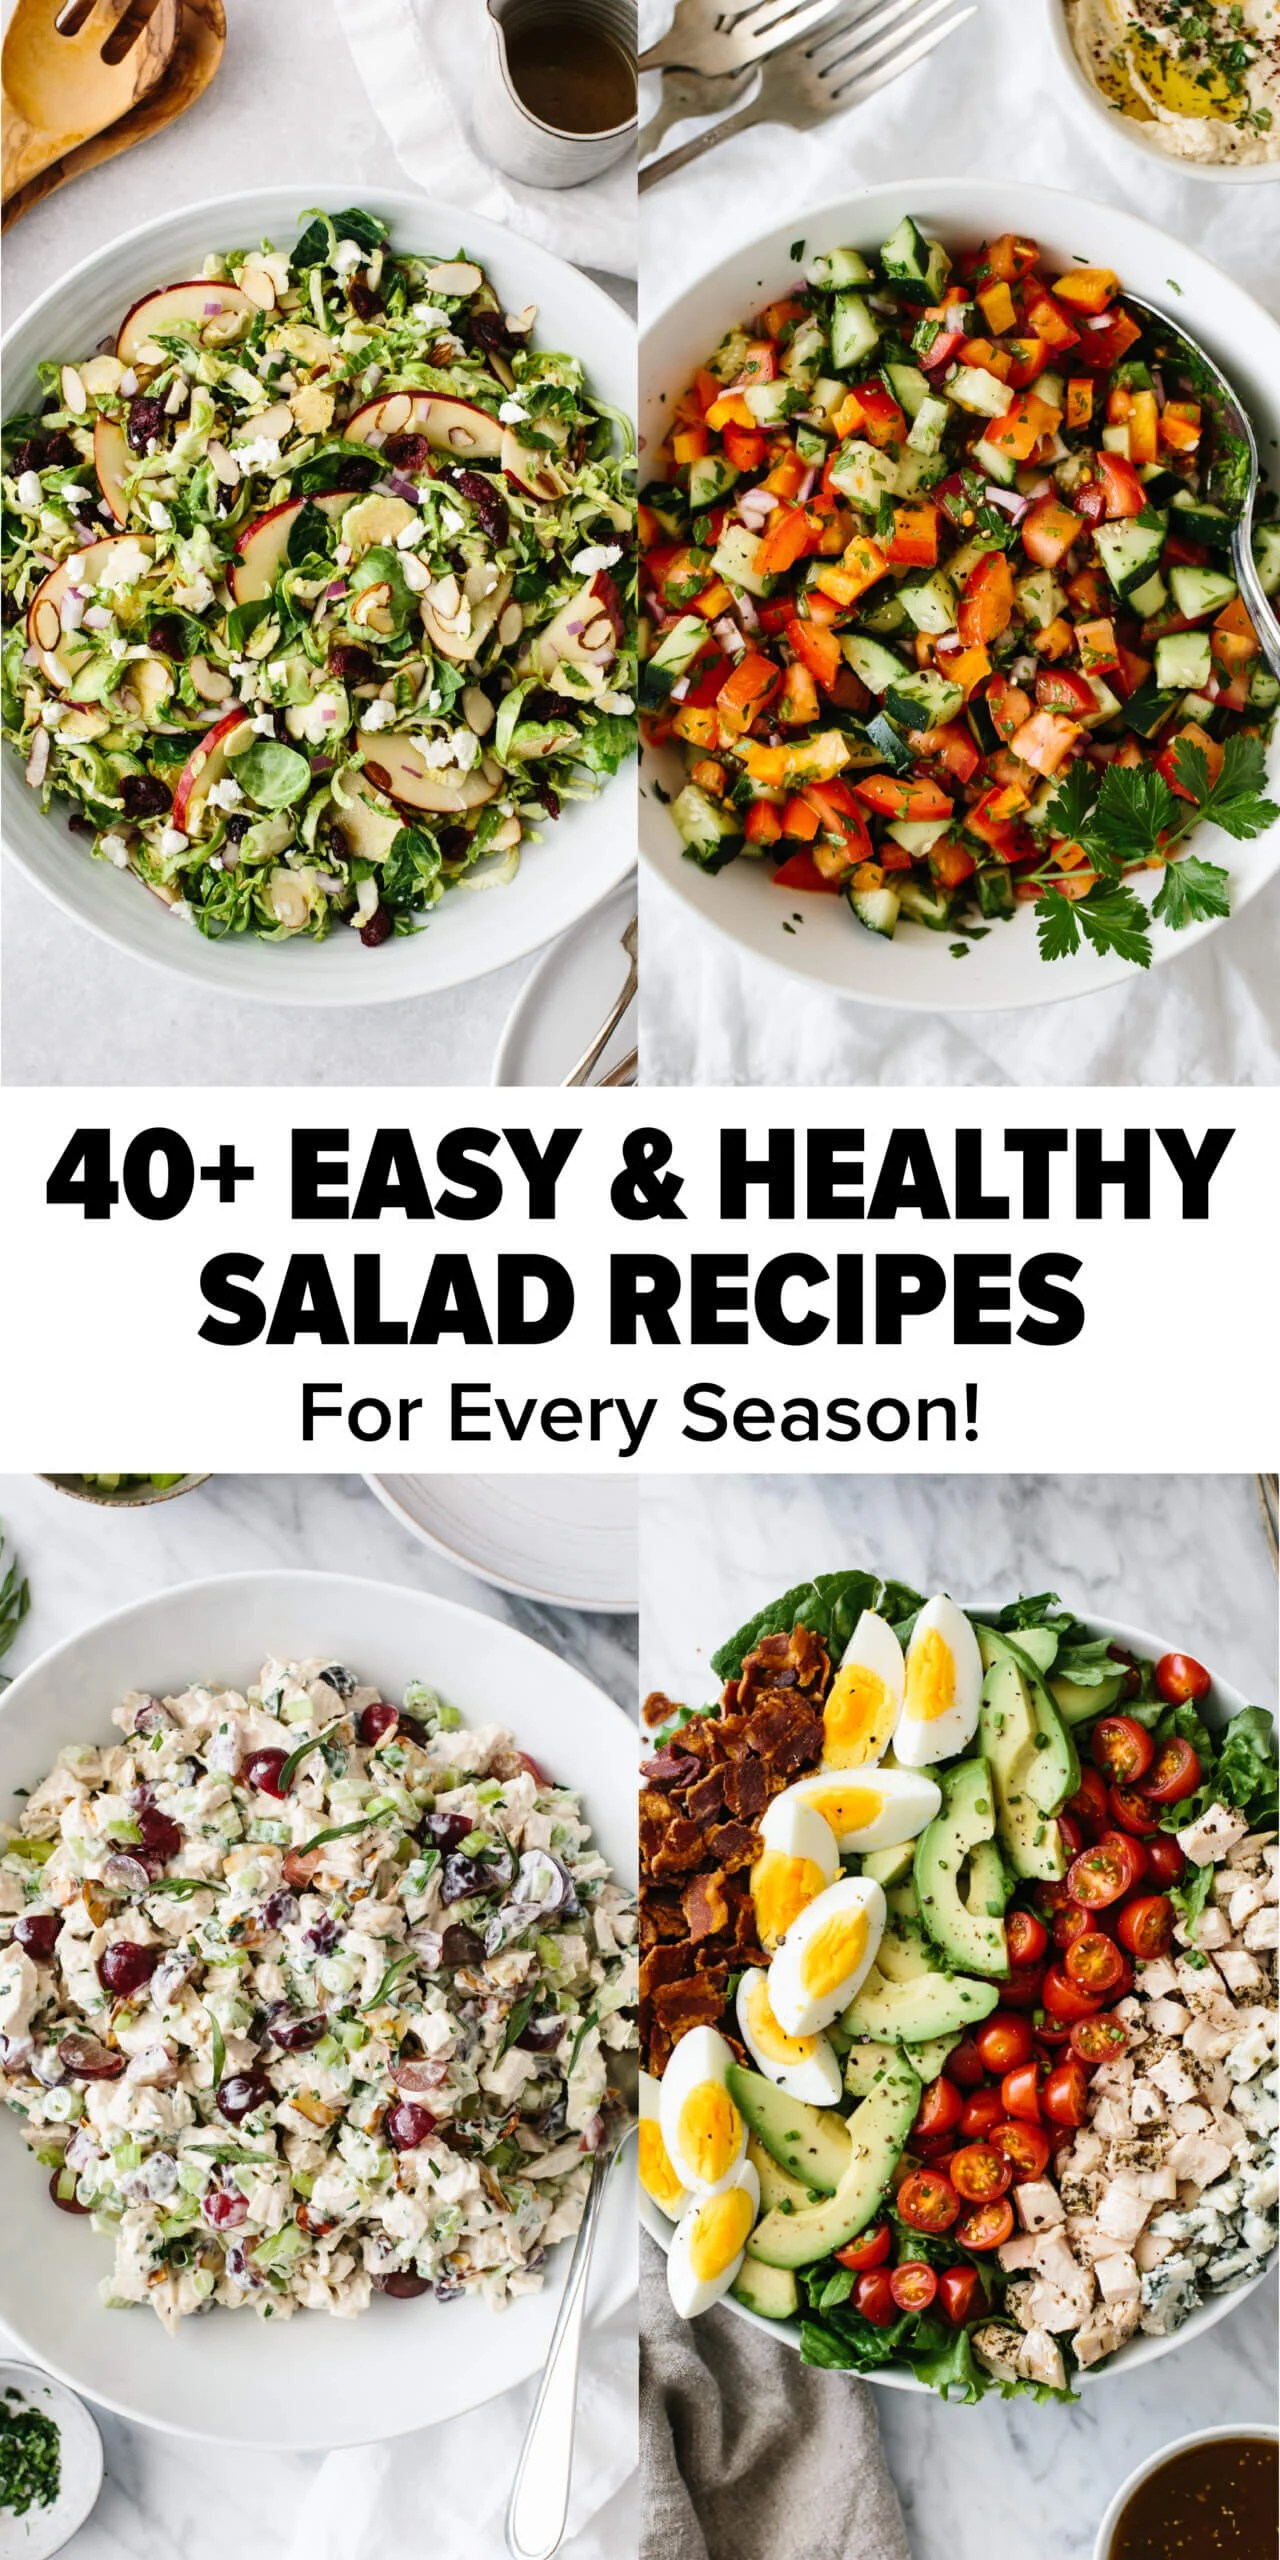 Compliation image of salad recipes.